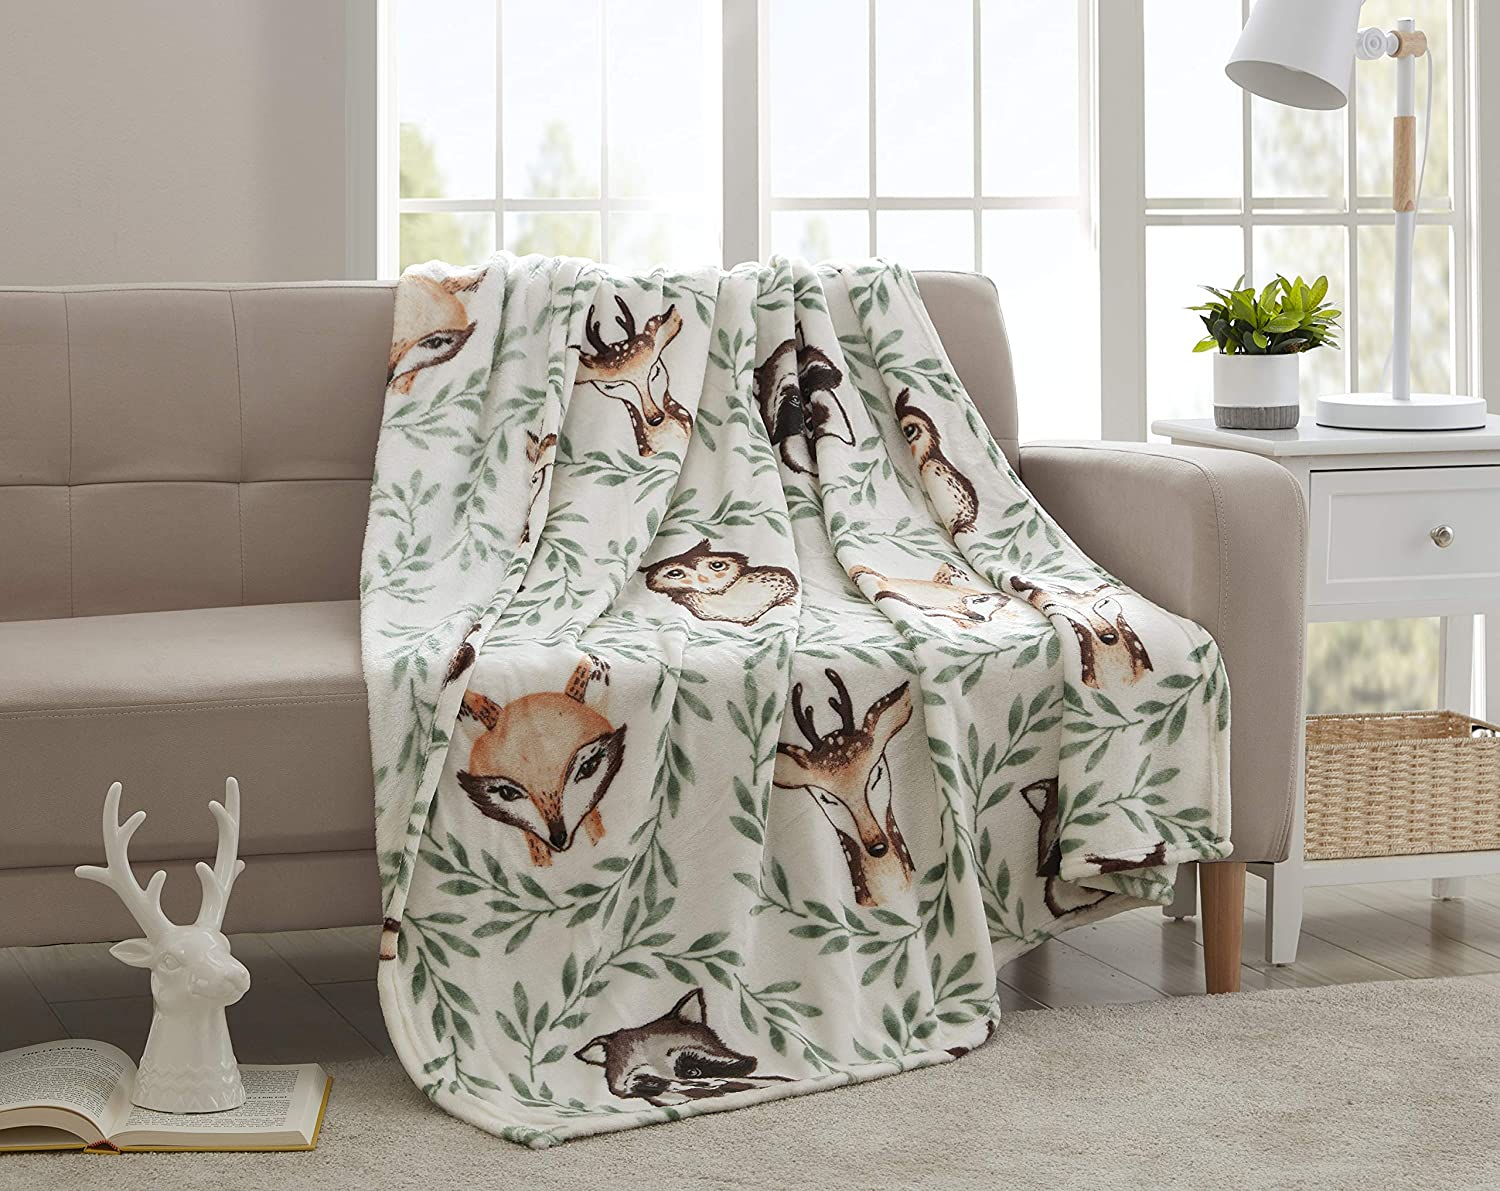 Morgan Home Fashions Velvet Plush Throw Blanket- Soft, Warm and Cozy, Lightweight for All Year Round Use 50 x 70 Inches Soft Velvet Plush in 5 Styles